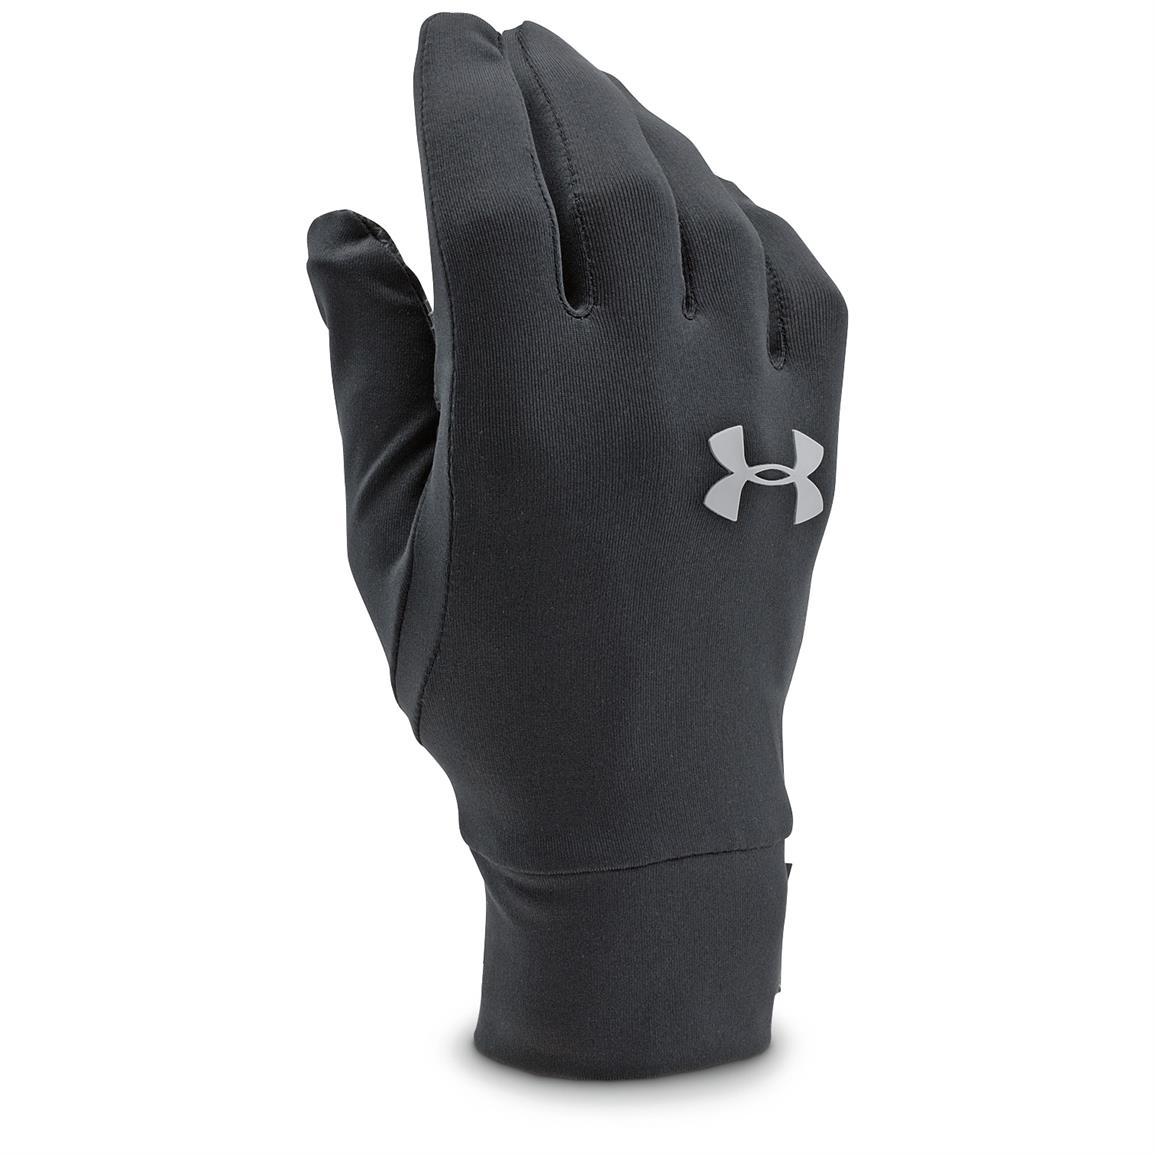 Under Armour Men's Core Liner Gloves, Black